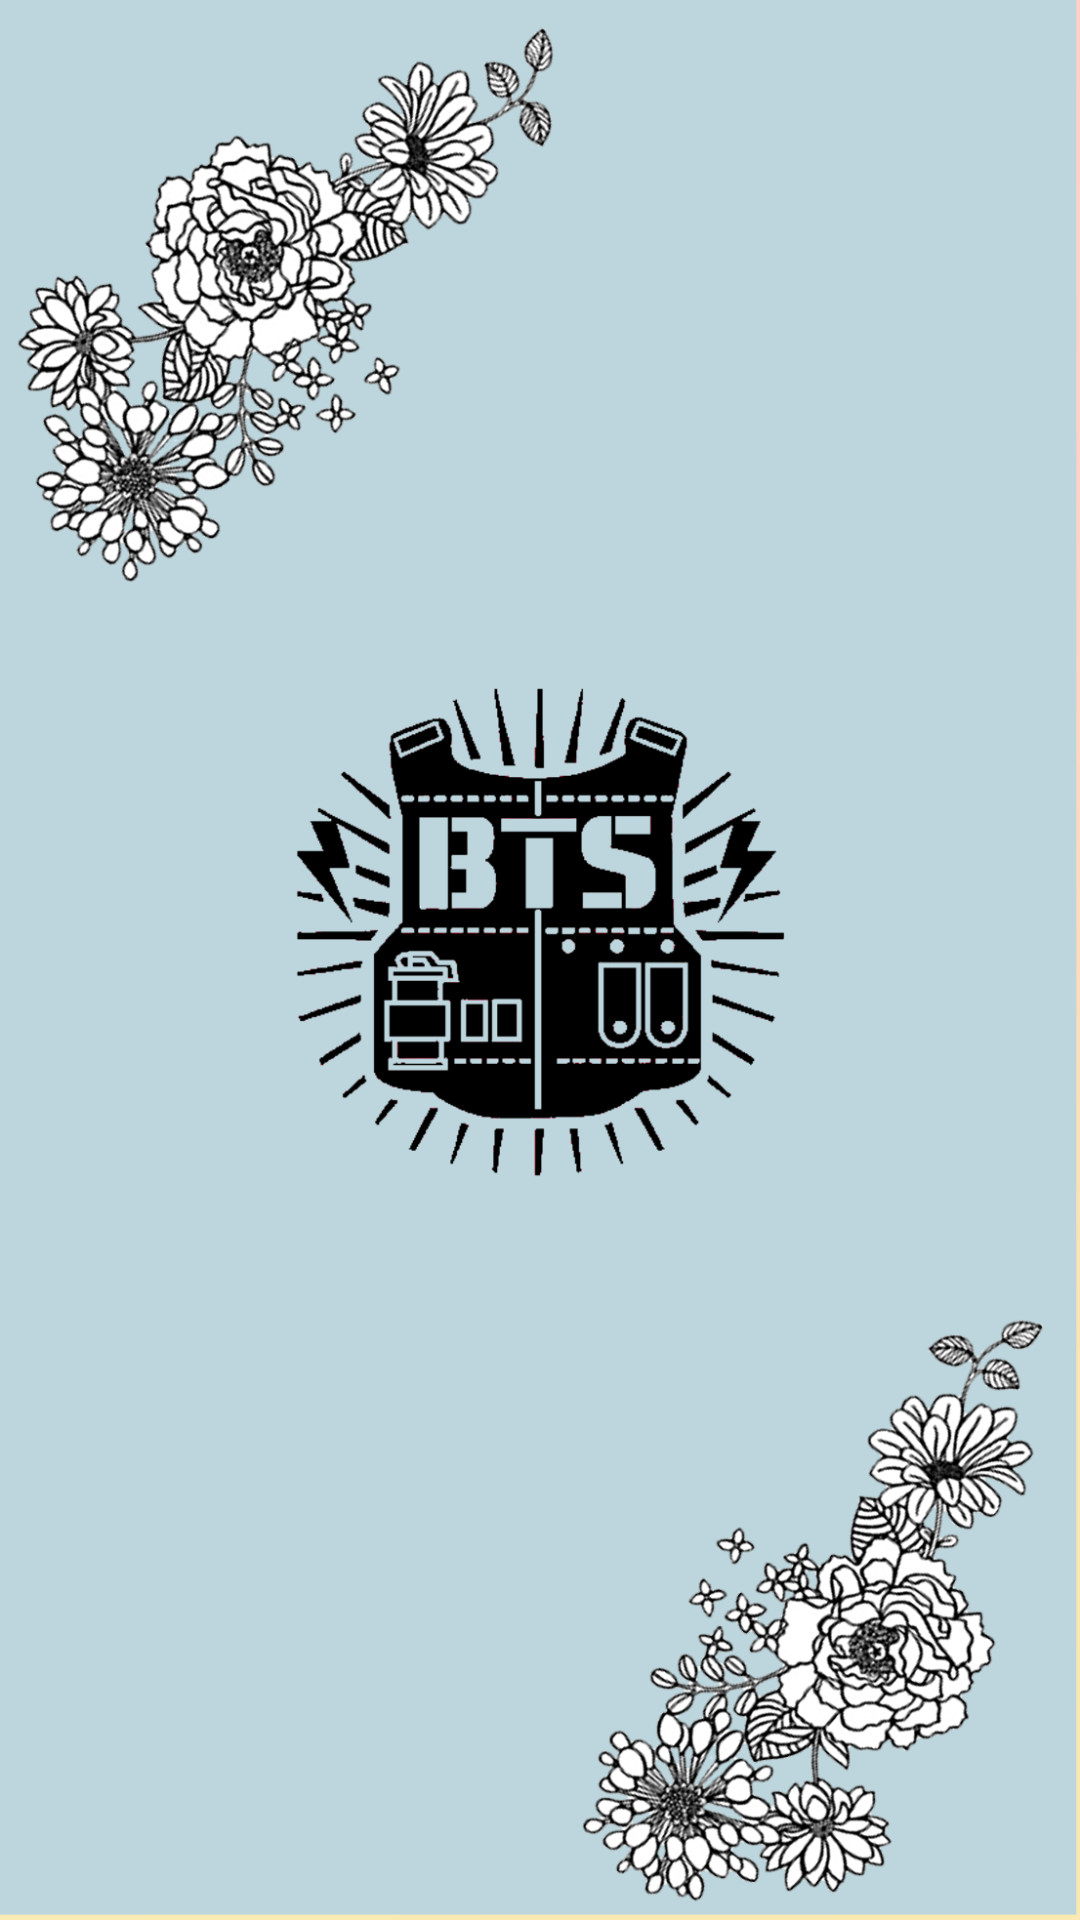 1080x1920 kpop lockscreen kpop wallpaper kpop phone wallpaper bts bangtan bts  wallpaper bts lockscreen got7 got7 wallpaper